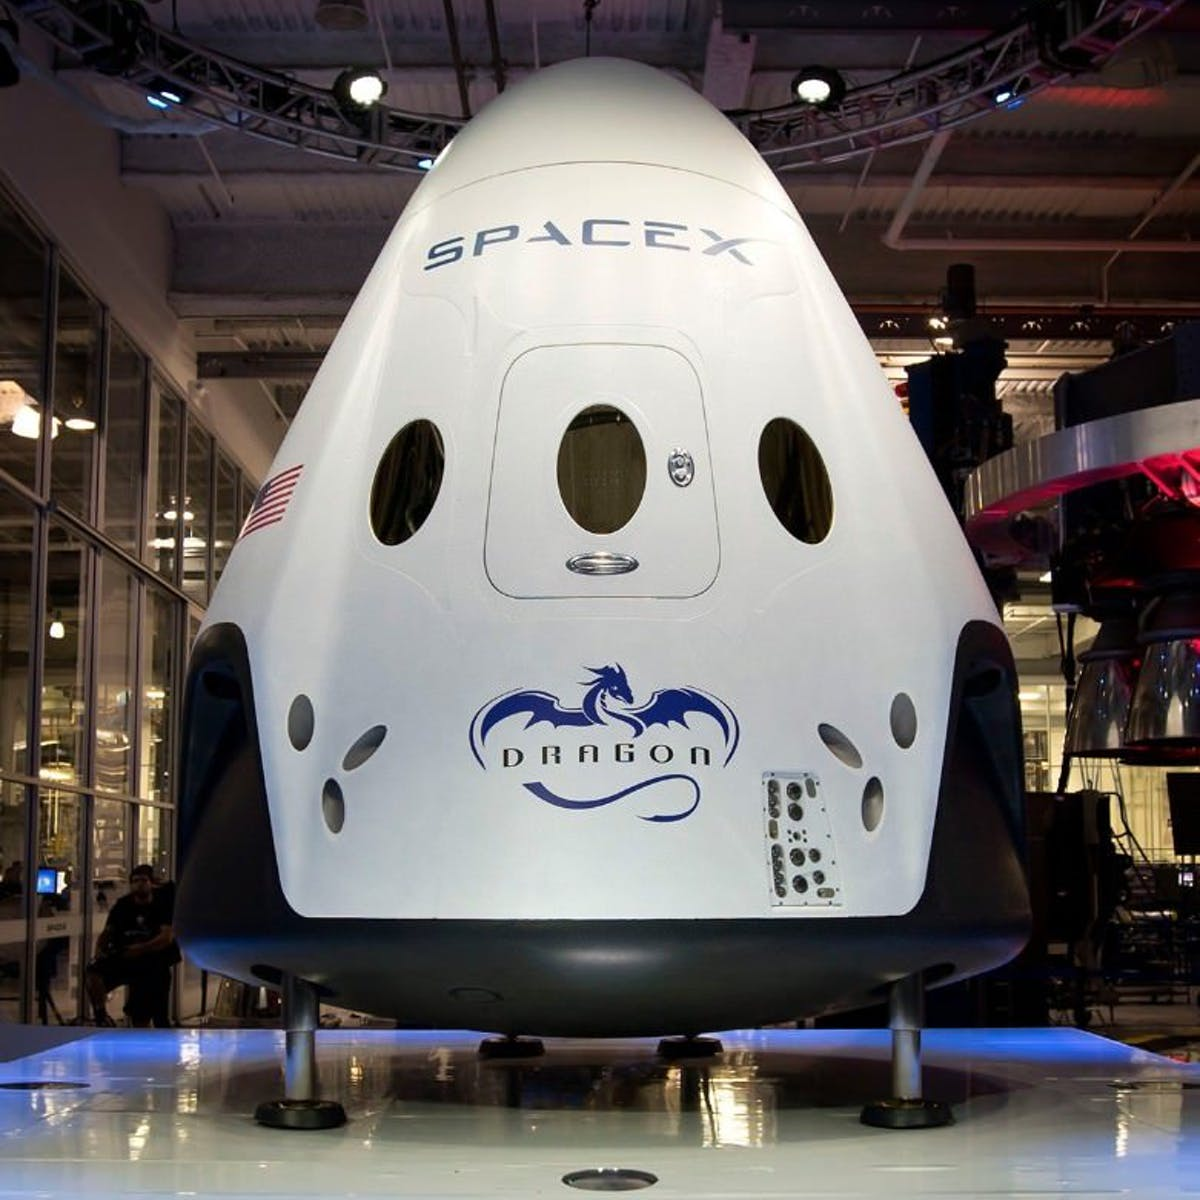 2019 Tech Predictions: SpaceX Completes a Manned Crew Dragon Test